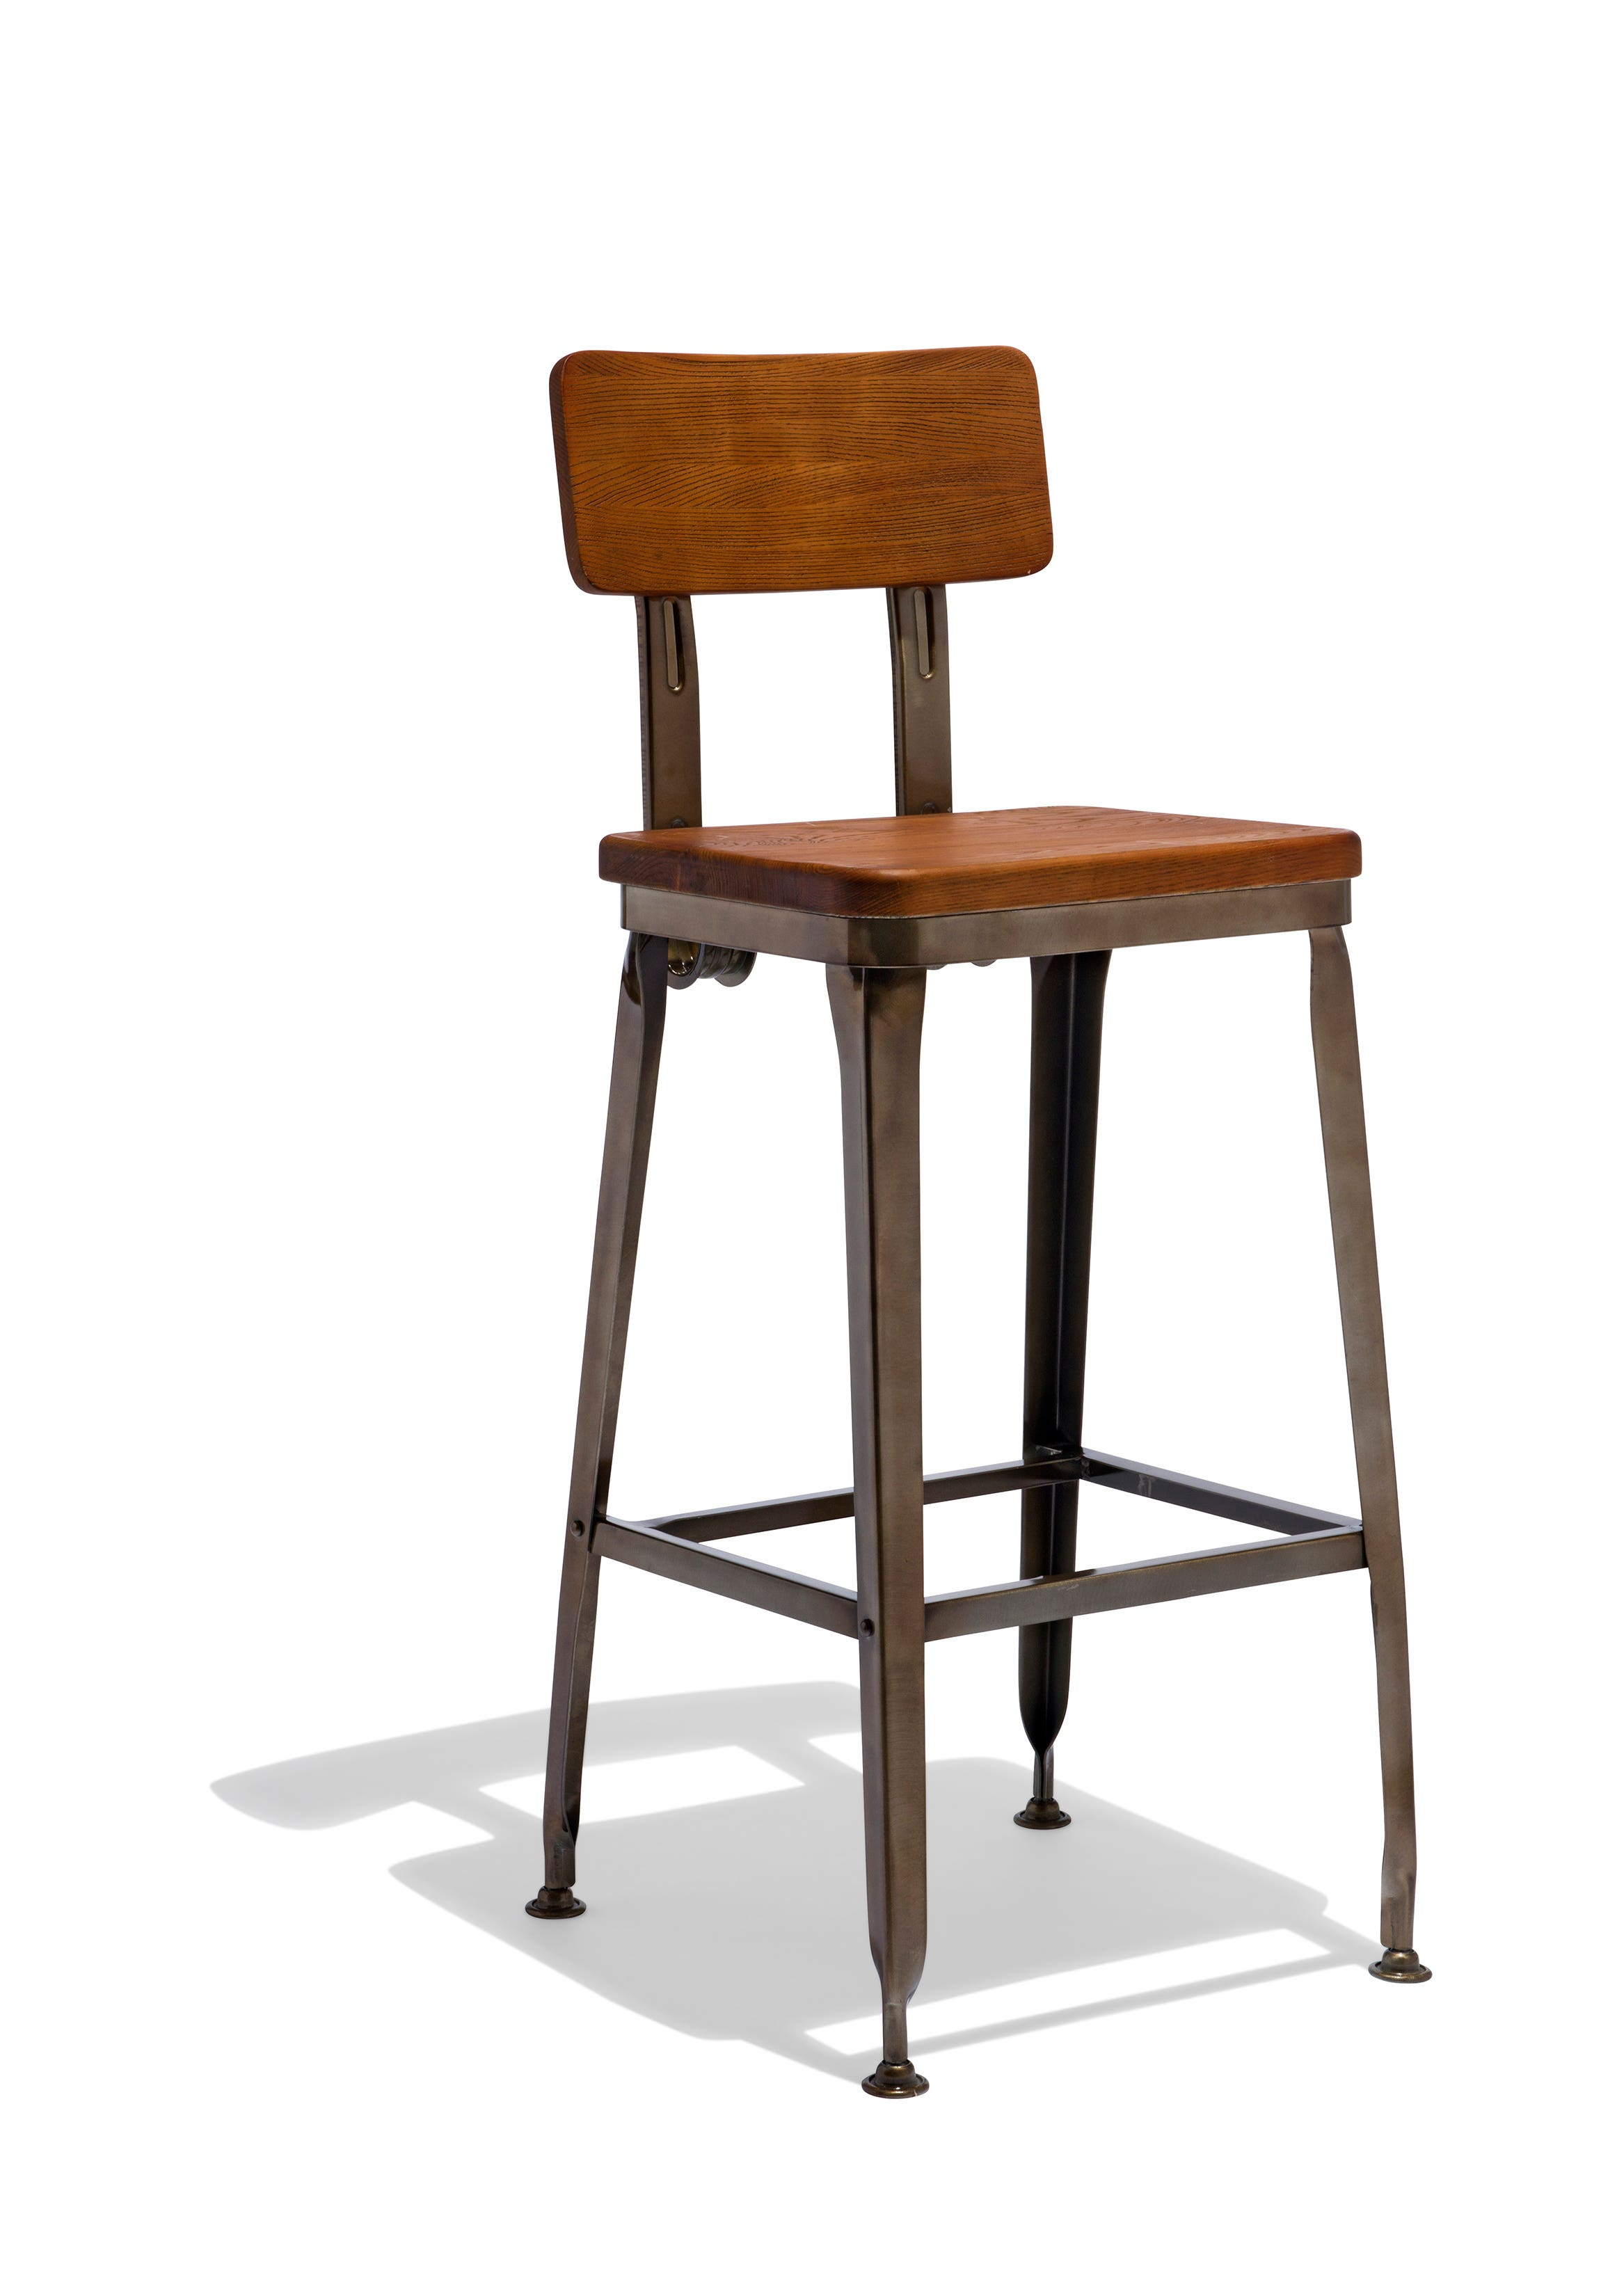 Octane Counter Stool With A Wood Seat The Octane